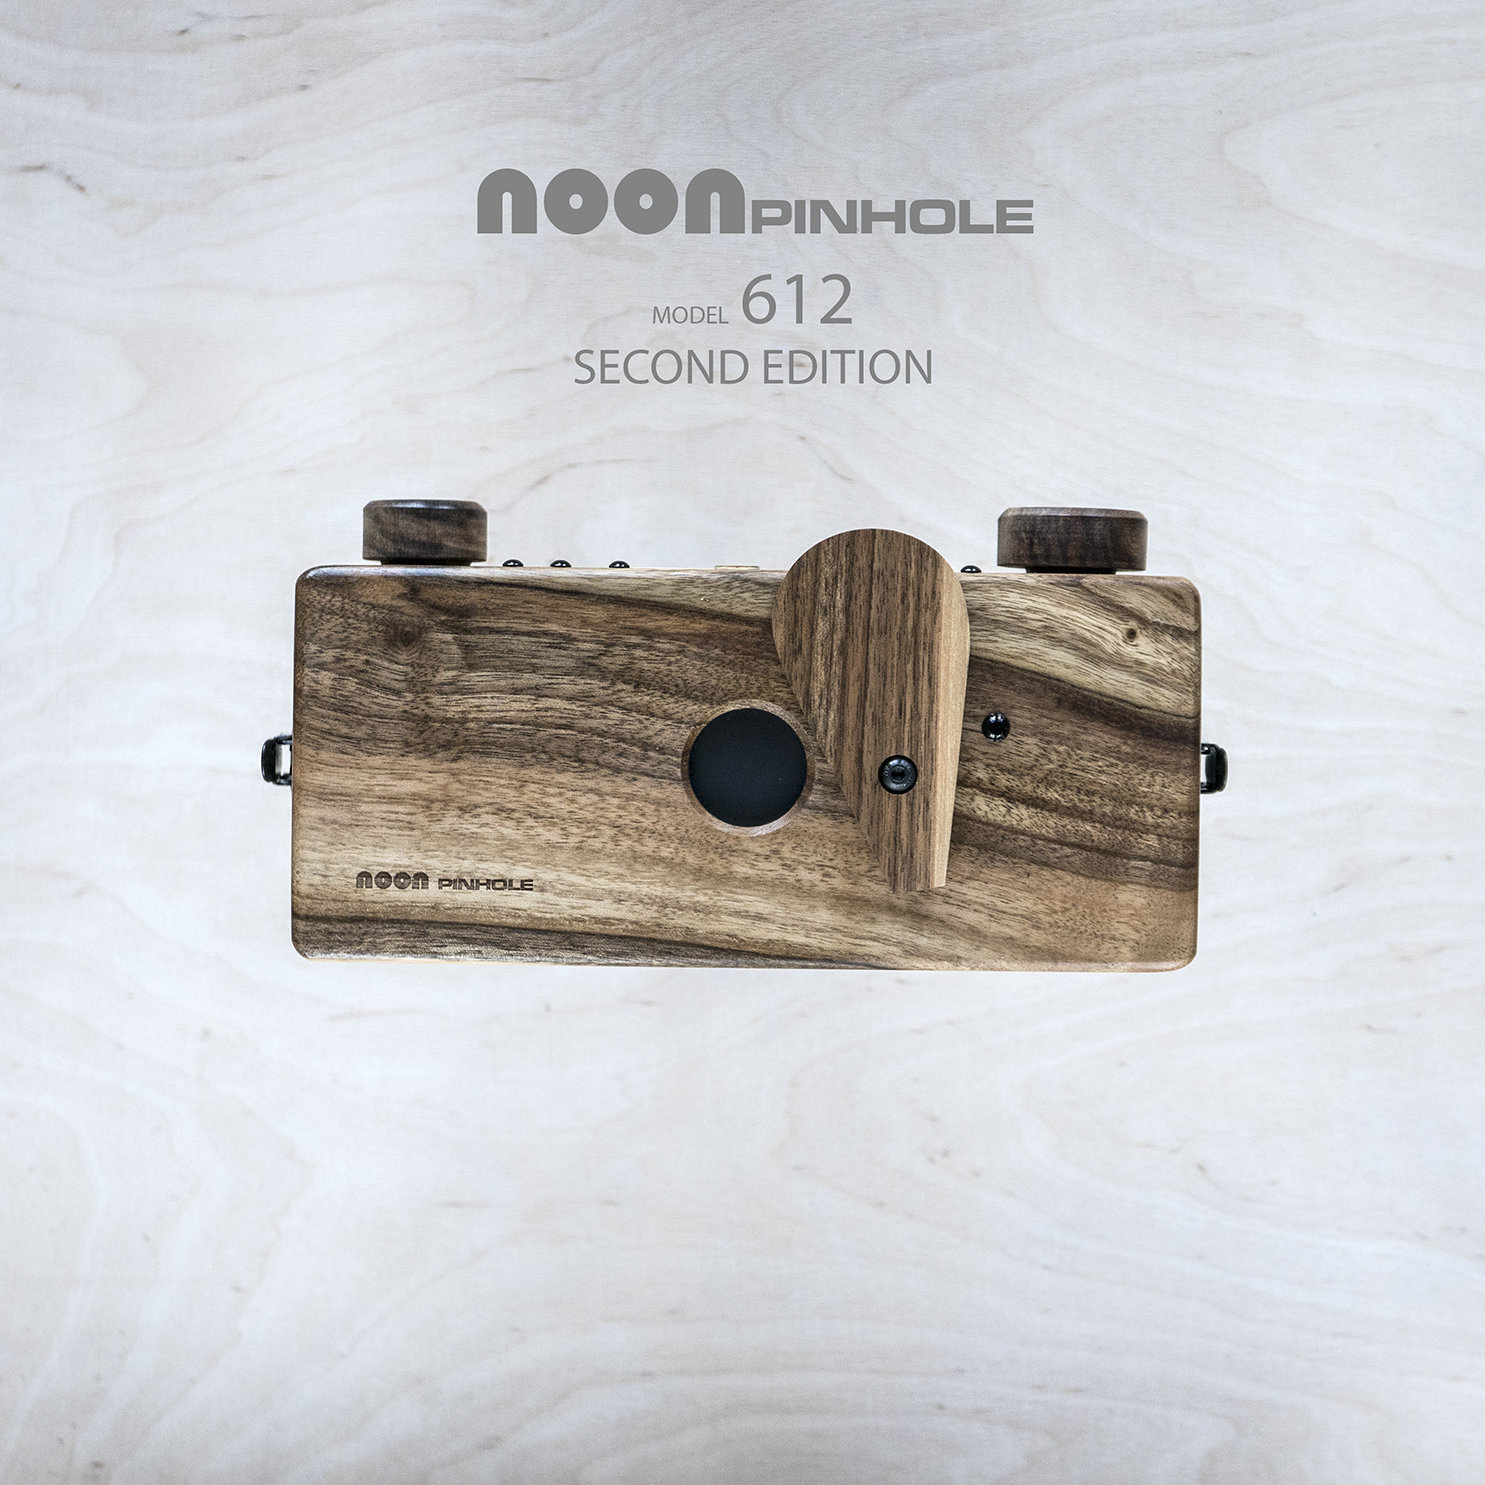 NOON 612 Pinhole Camera - image courtesy of NOON on Etsy